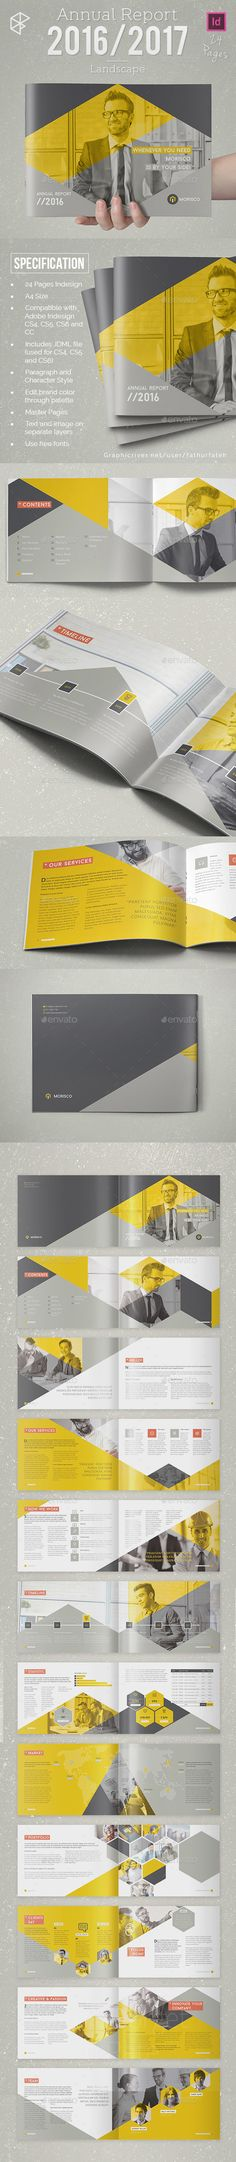 Annual Report Annual reports, Corporate brochure and Brochures - annual report template